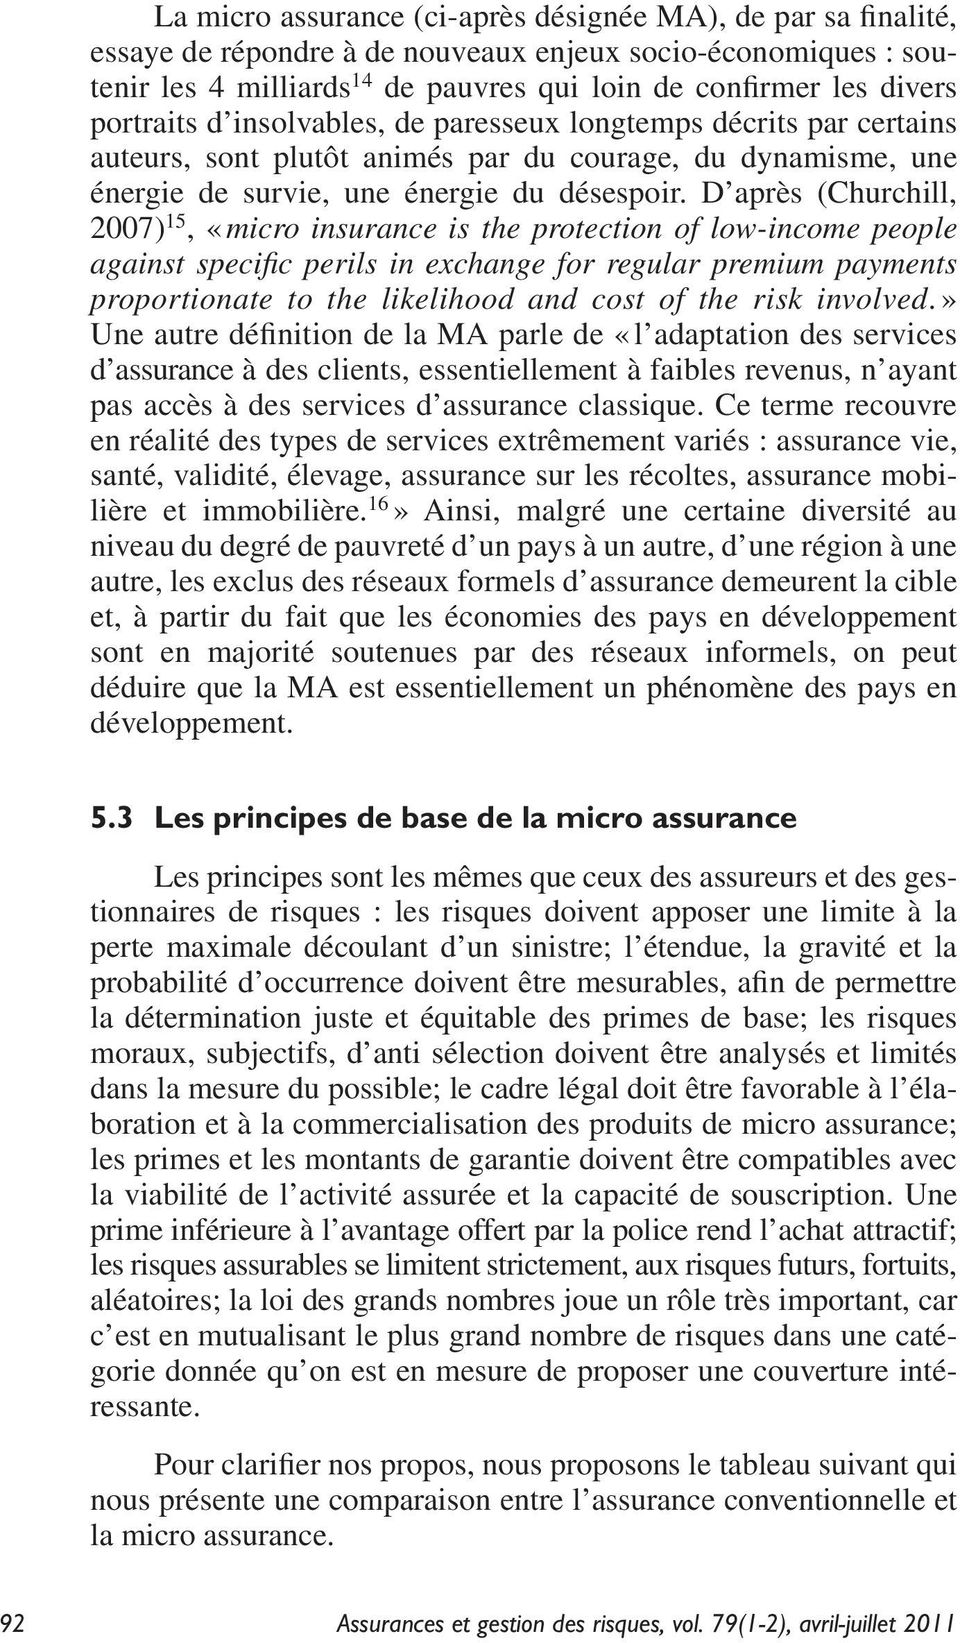 D après (Churchill, 2007) 15, «micro insurance is the protection of low-income people against specific perils in exchange for regular premium payments proportionate to the likelihood and cost of the